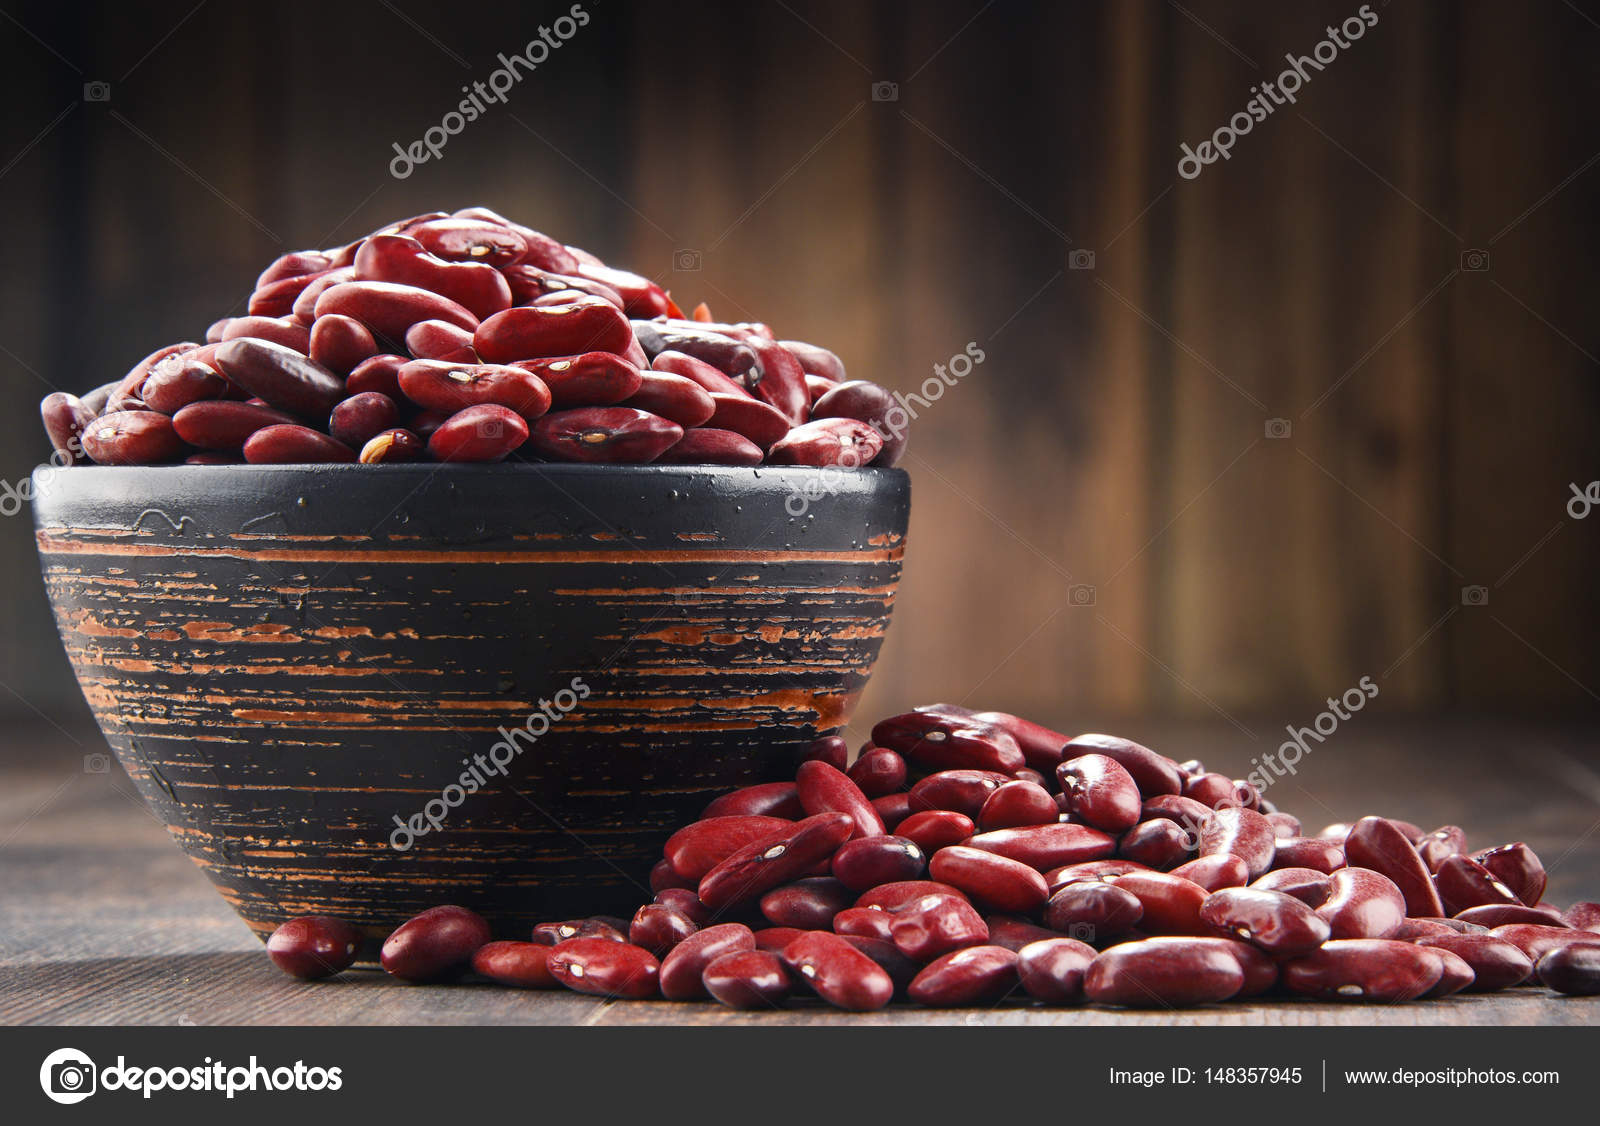 kidney bean table odd shaped composition with bowl of kidney bean on wooden table stock photo